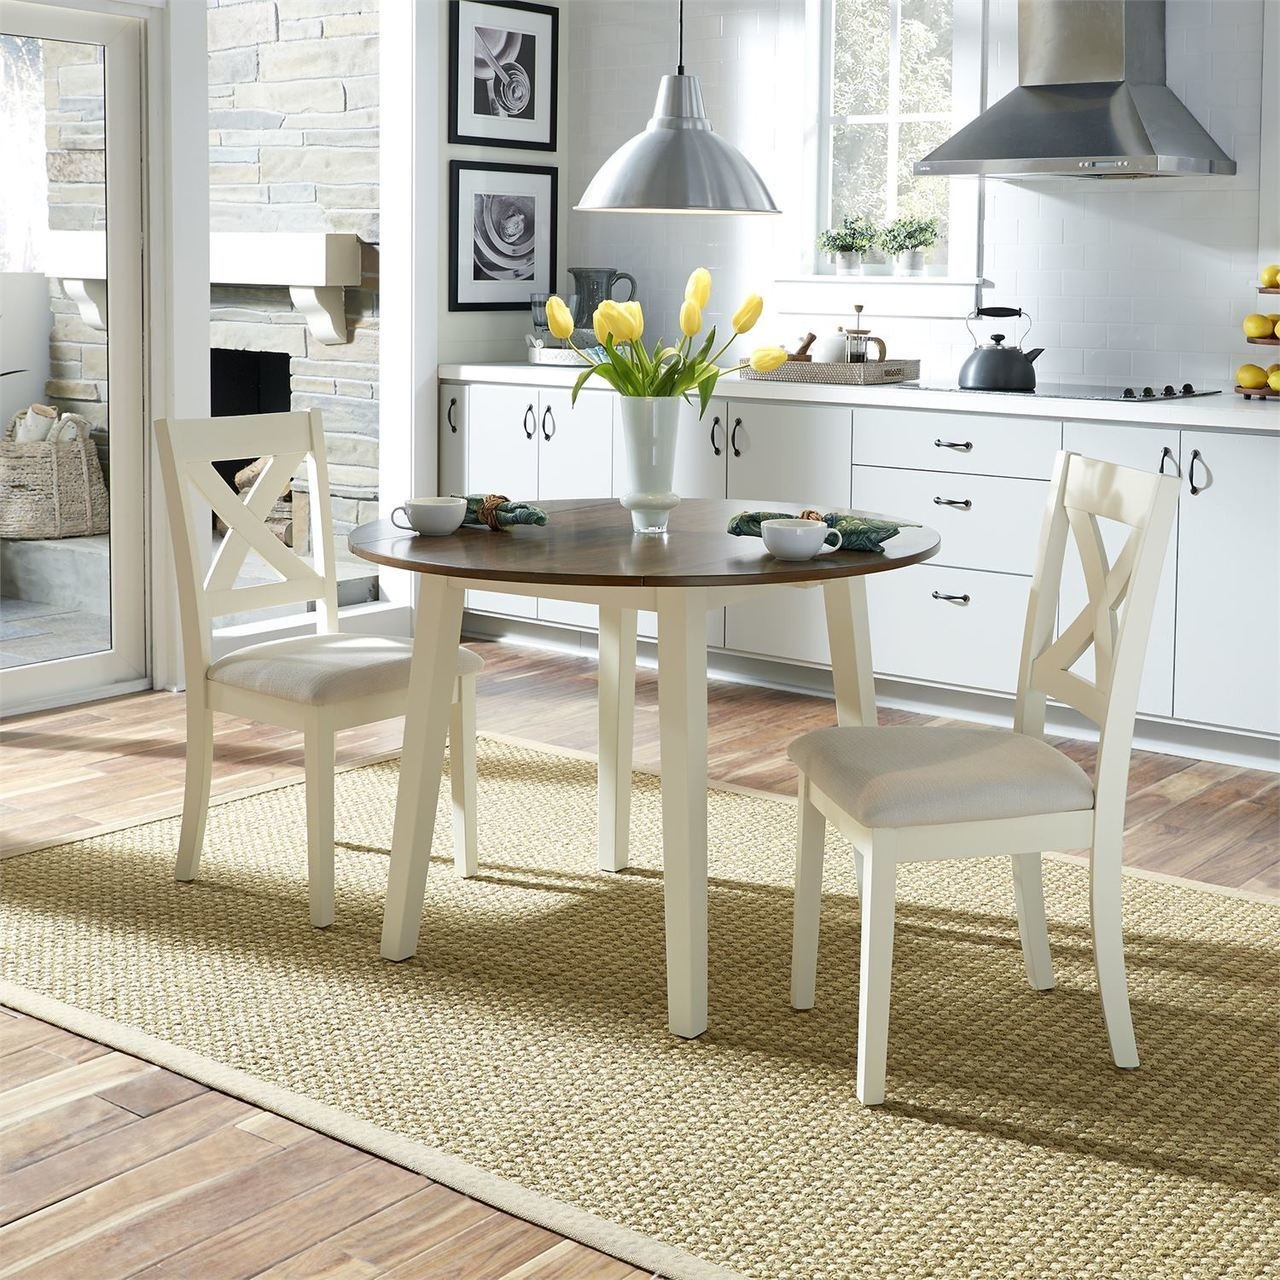 364-CD-3LS Dinette Set